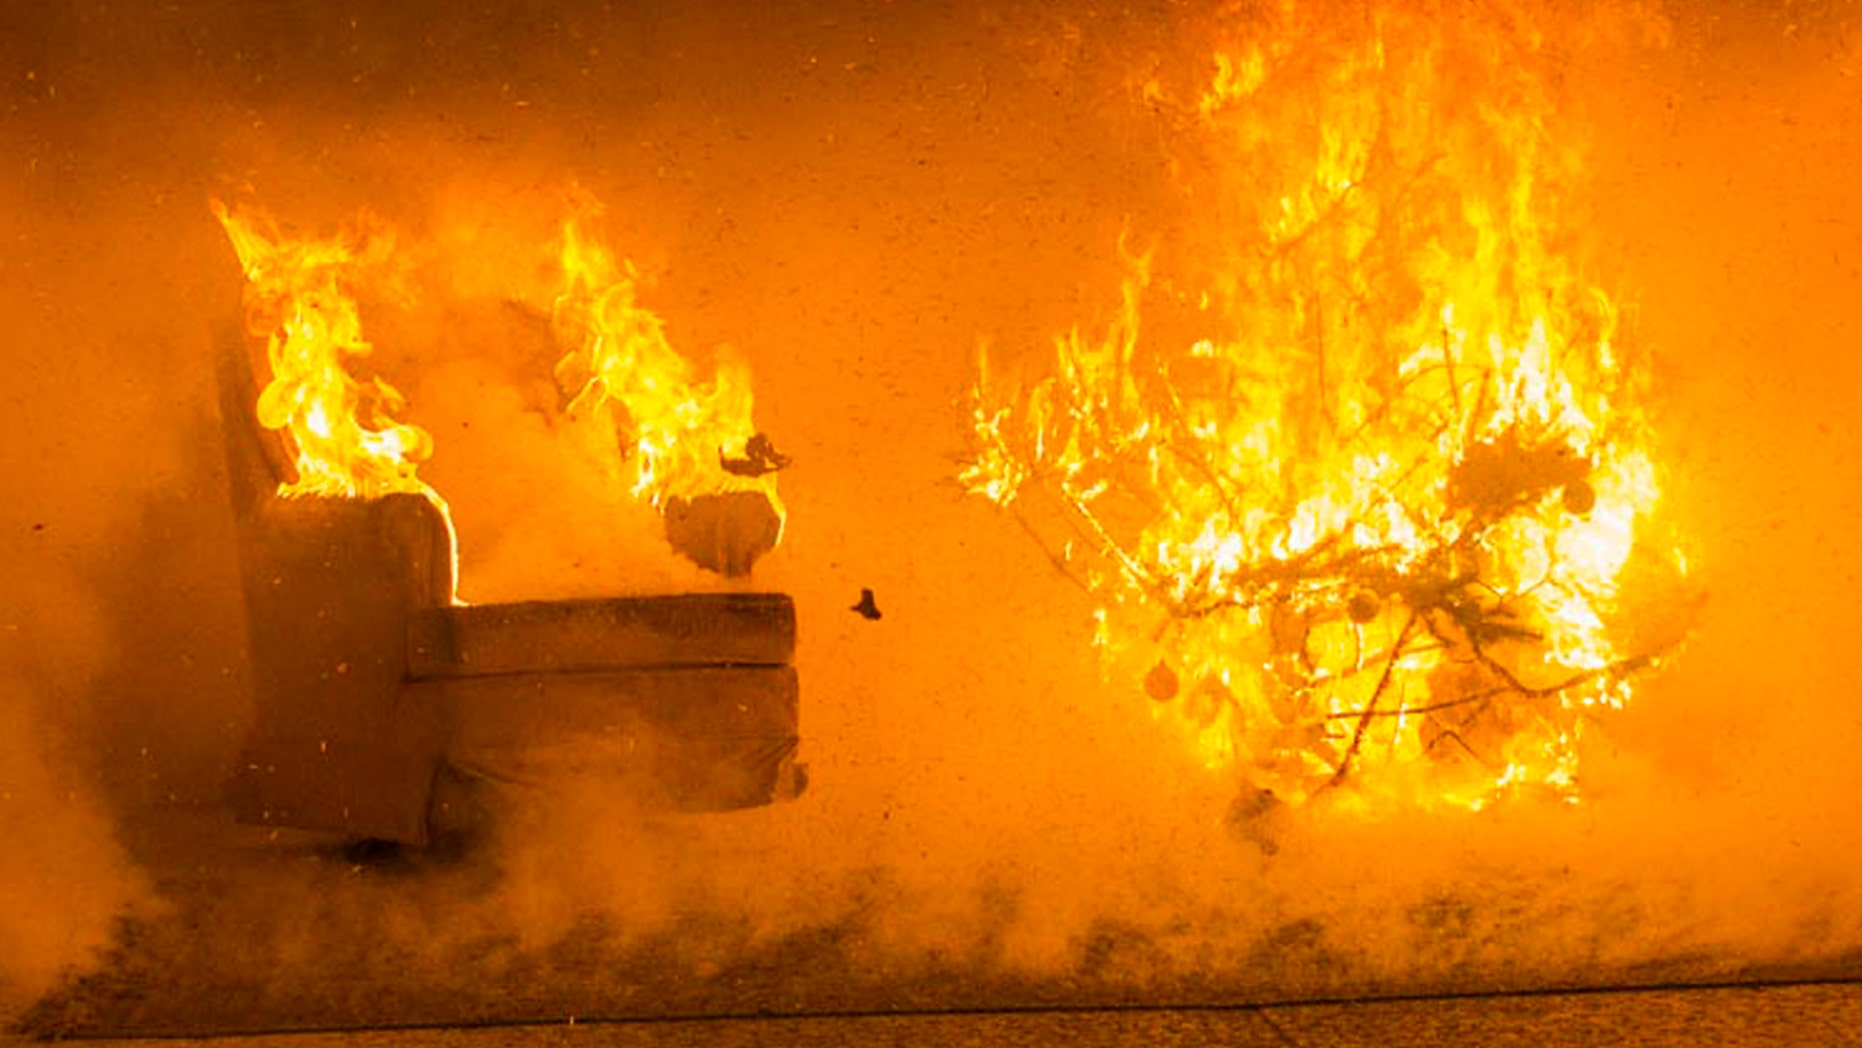 In this Tuesday, Nov. 29, 2016 photo flames engulf the wall and ceiling of a room as well as items in the room thirty-five seconds into the ignition of a Christmas tree during a test burn by the fire protection engineering lab at the Worcester Polytechnic Institute, in Worcester, Mass.